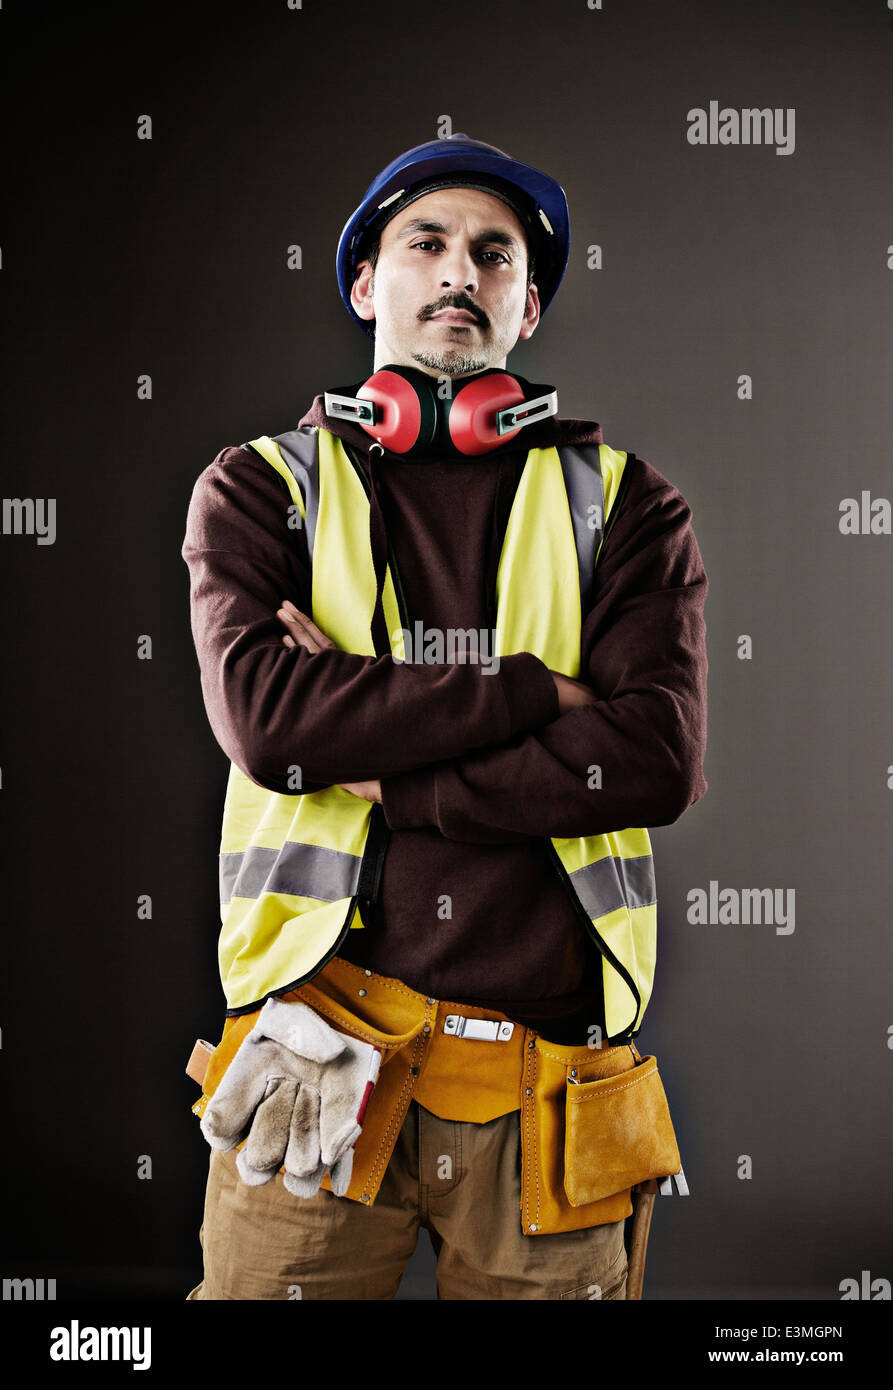 Portrait of serious worker in reflective clothing - Stock Image